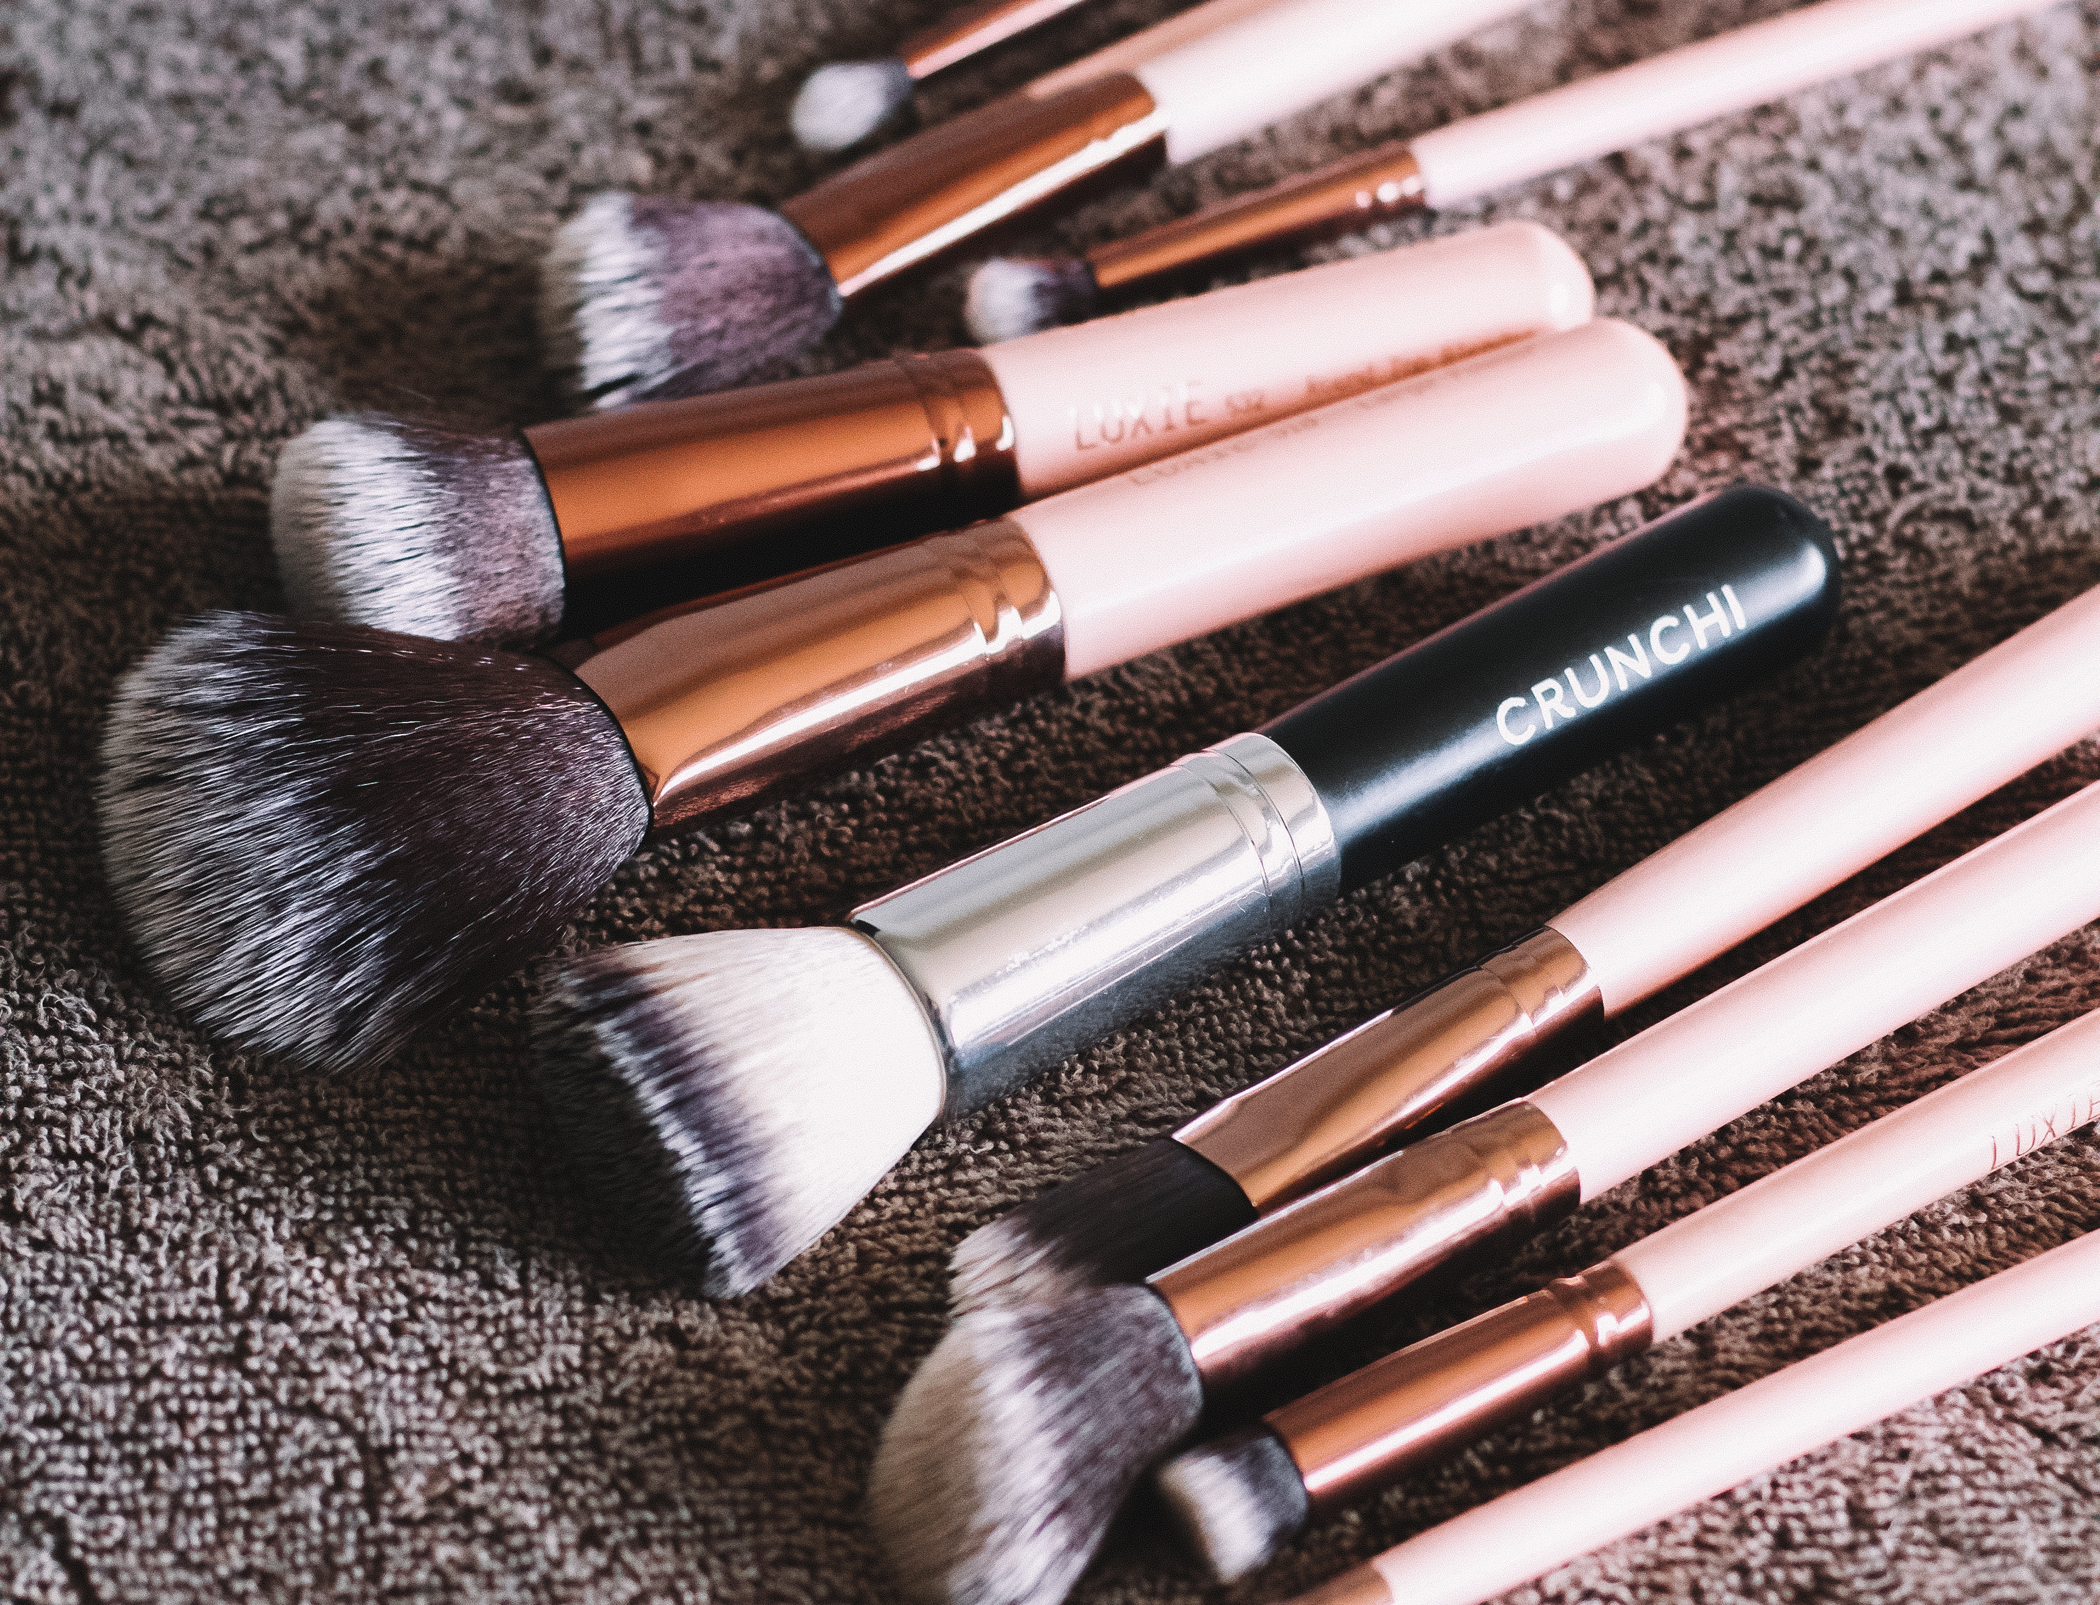 When it comes to makeup brushes, did you know that you are technically supposed to wash them after every use? As you can imagine, our makeup brushes are a ...